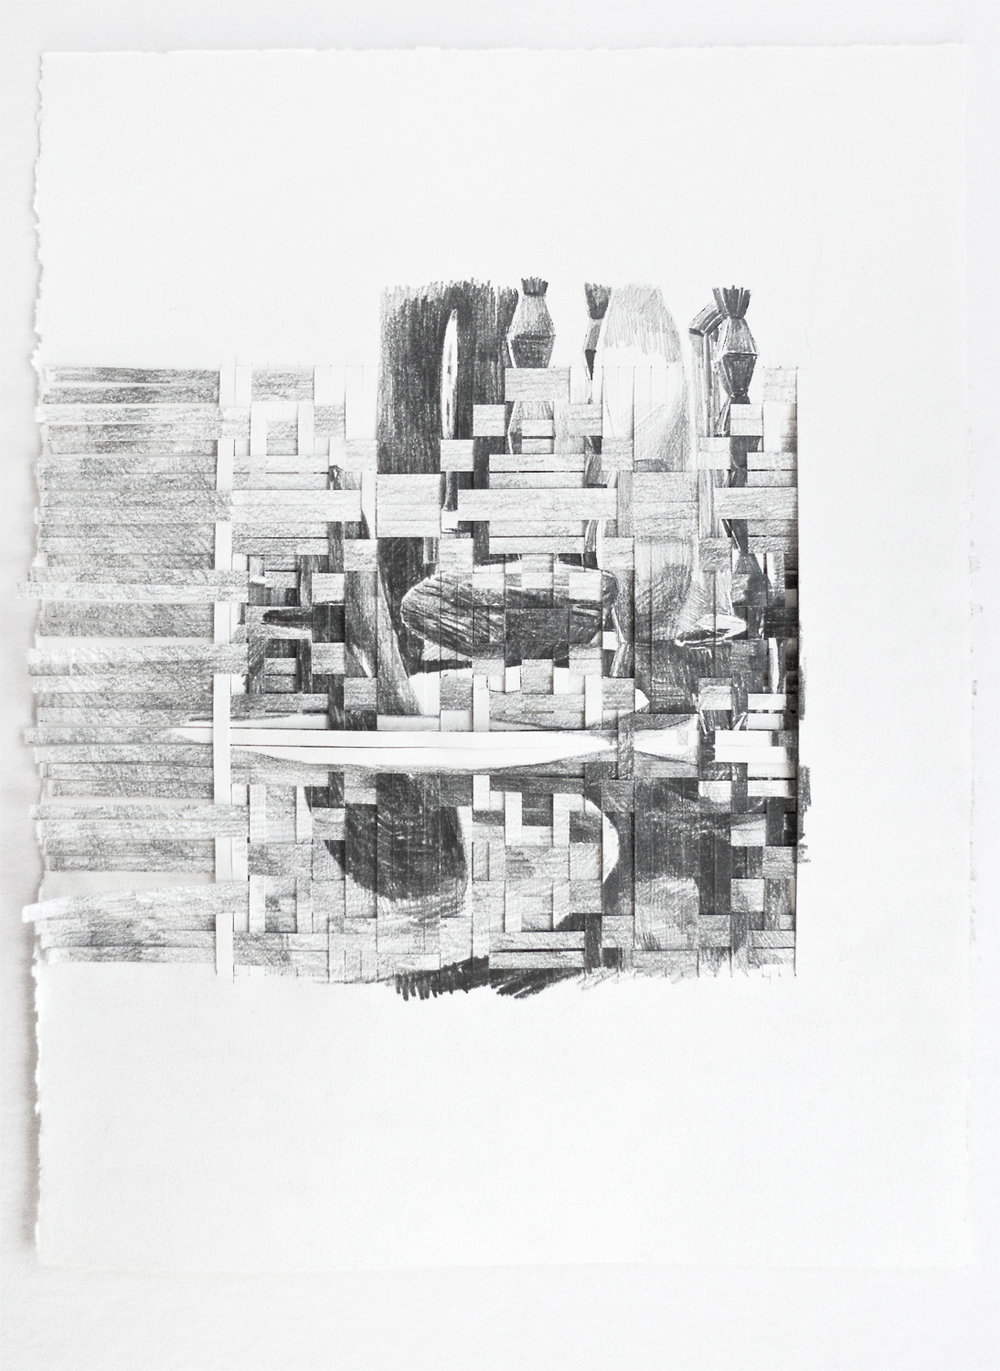 CUTS #4 (2016) pencil on paper, 37.5 x 29 cm